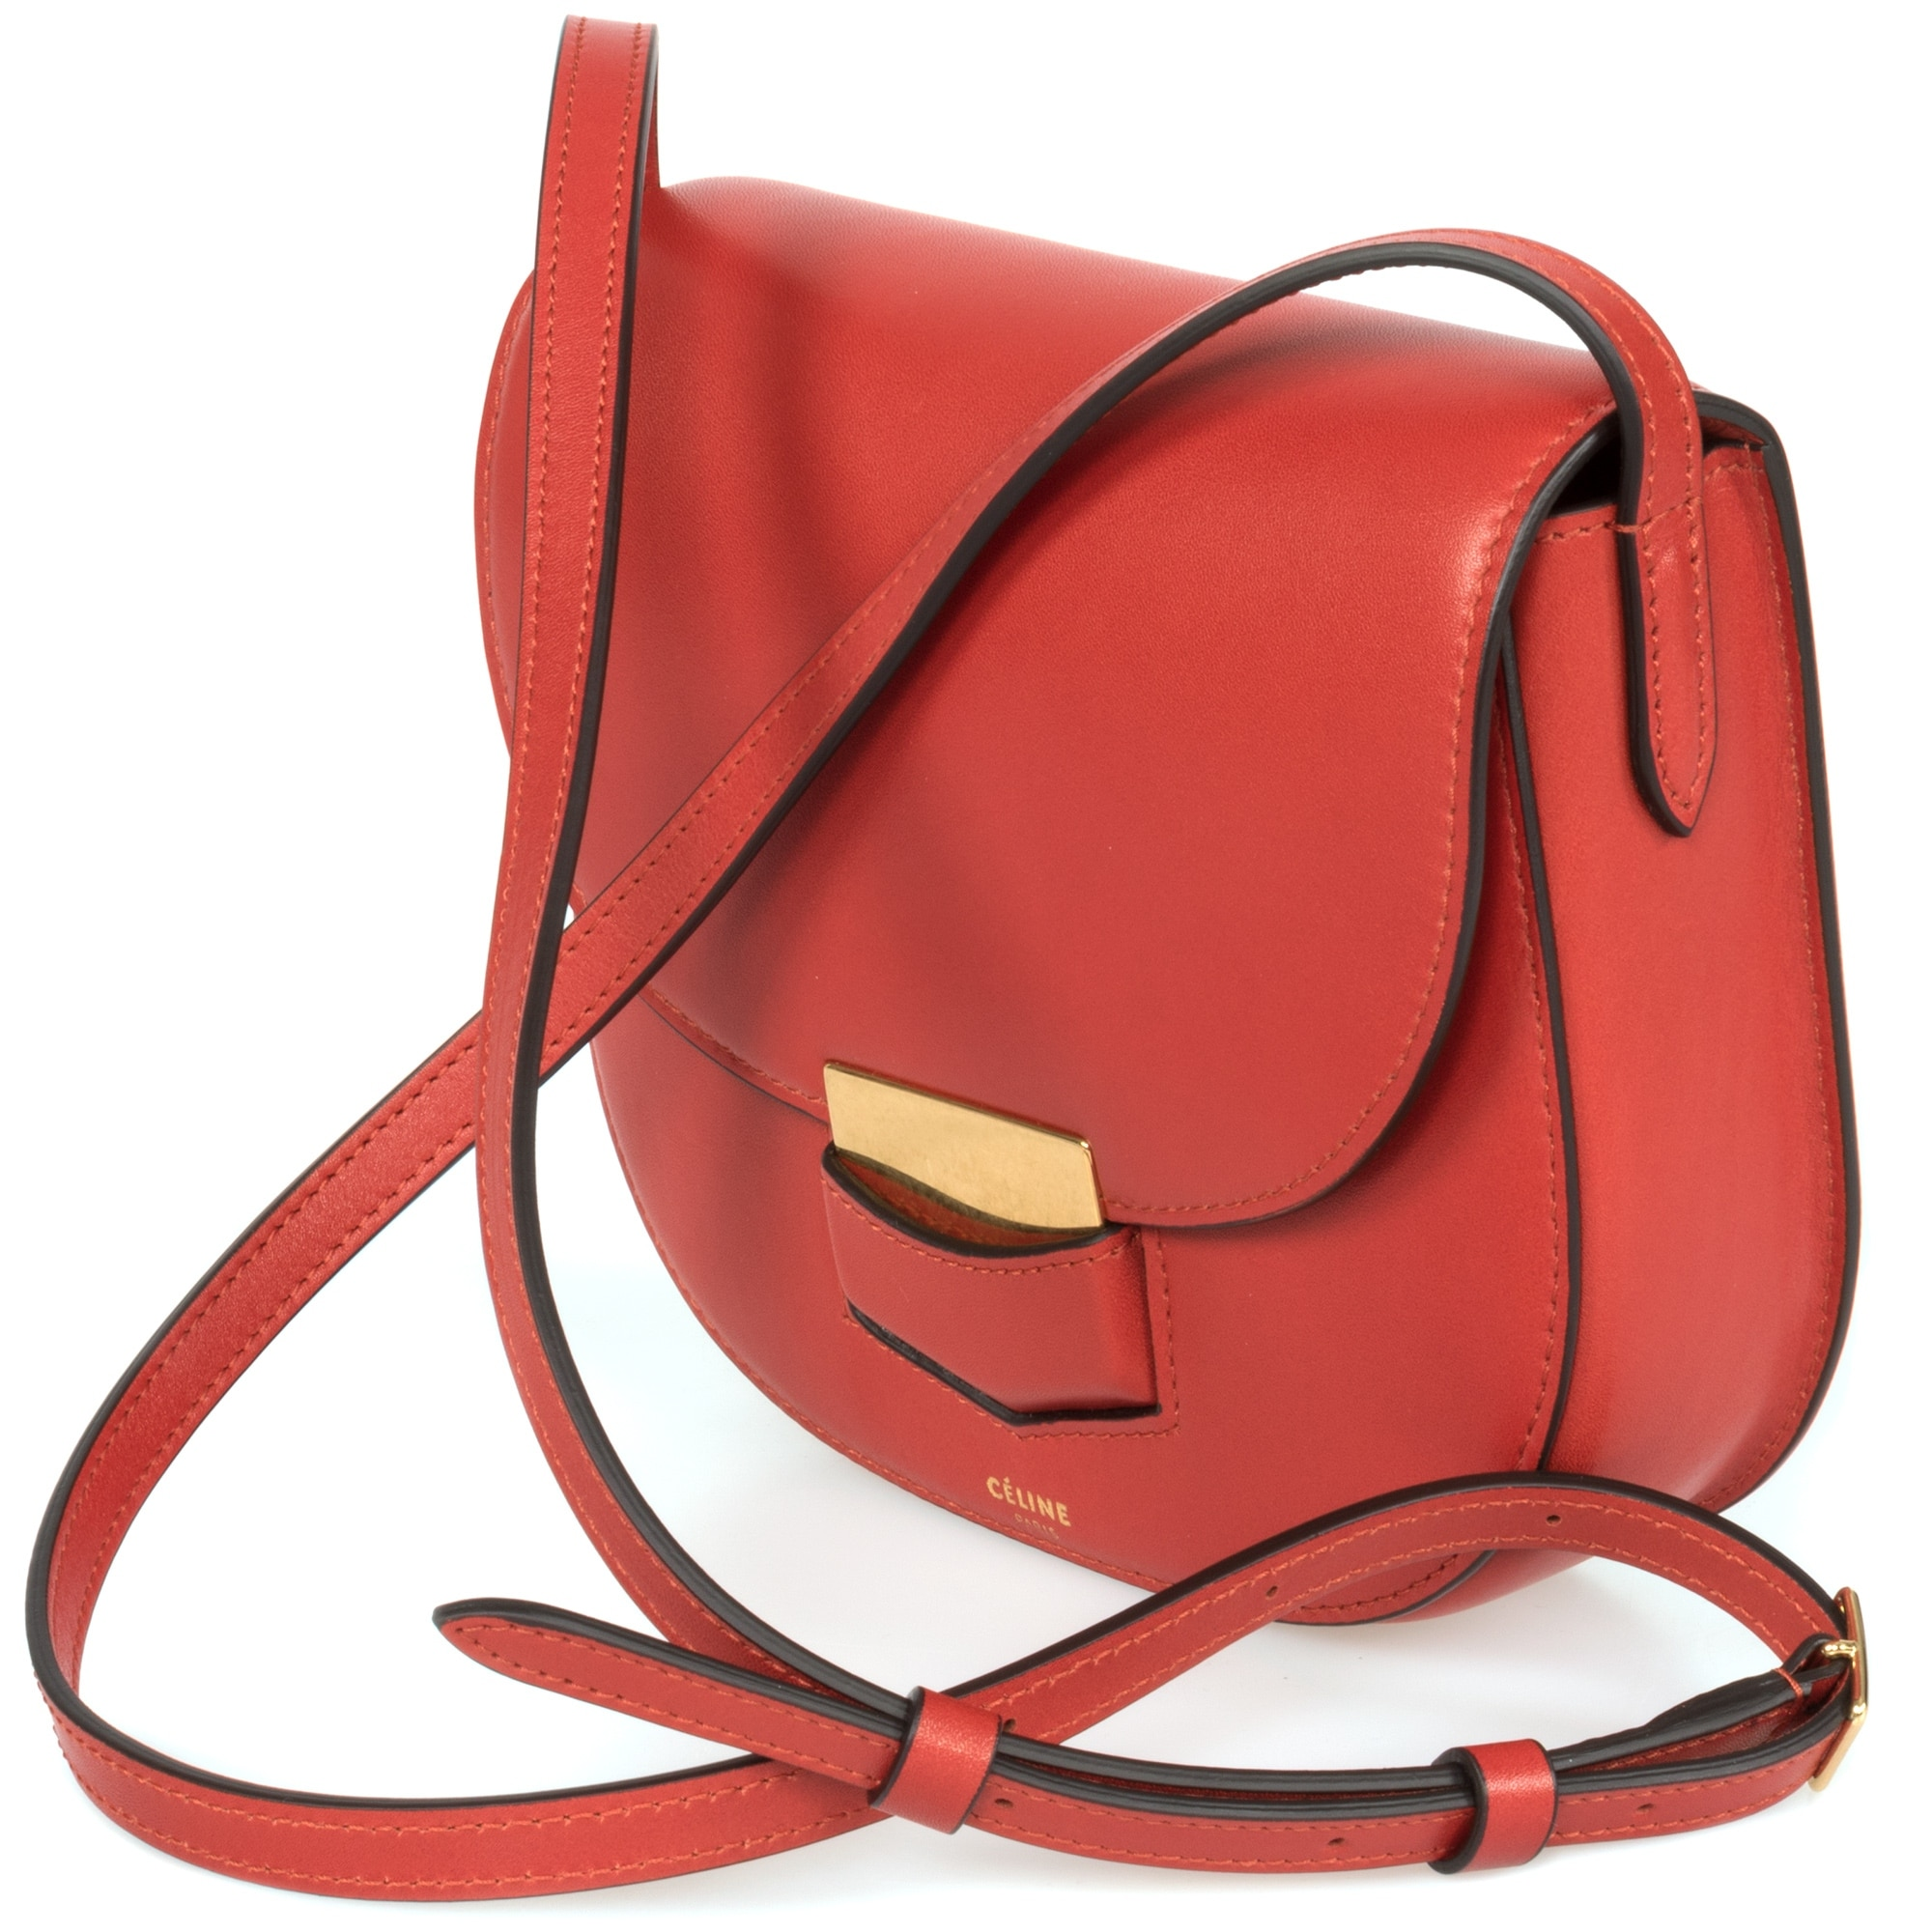 2602a38b1 Shop Celine Trotteur Small Red Calfskin Leather Crossbody Handbag - Free  Shipping Today - Overstock - 23077867